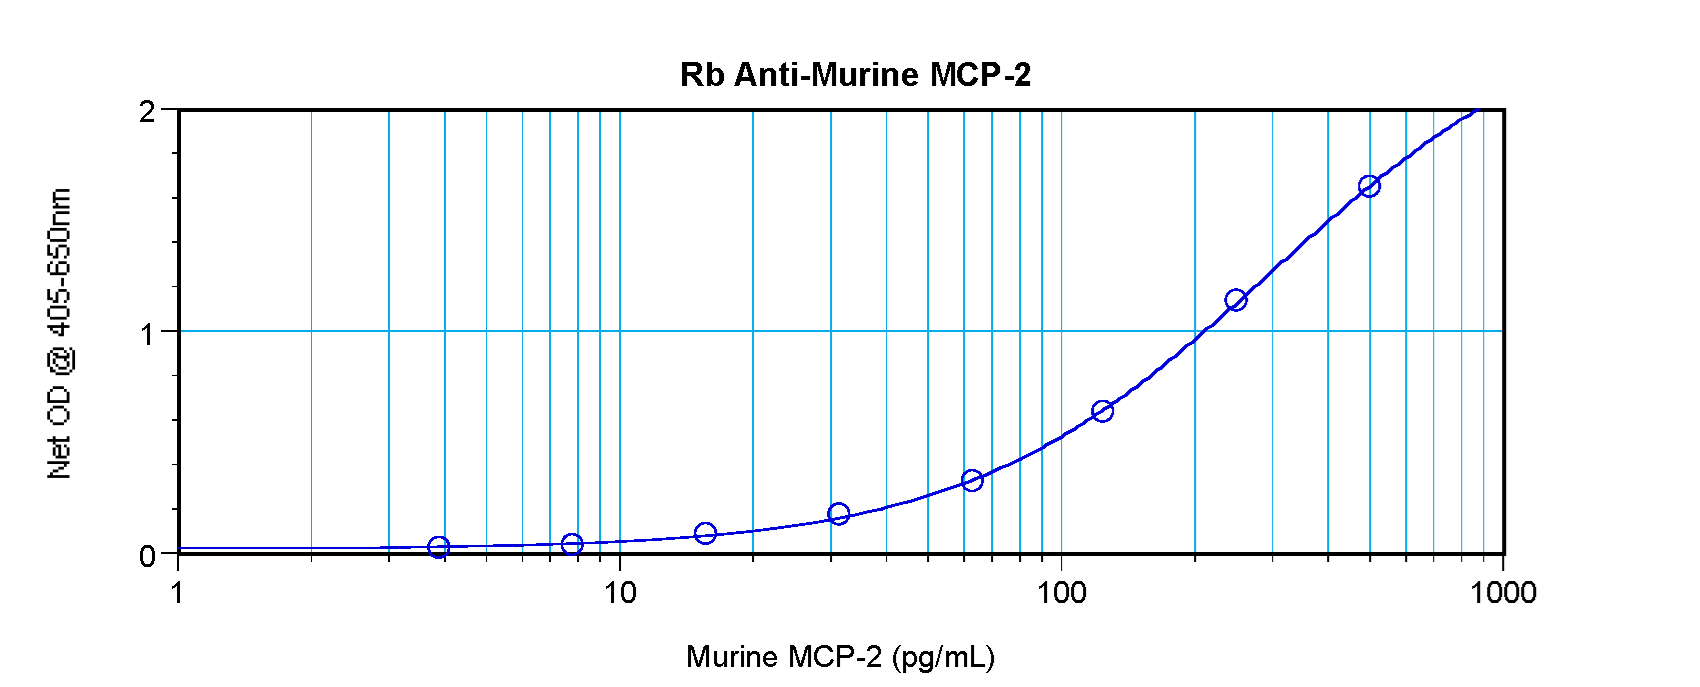 CCL8 / MCP2 Antibody - Anti-Murine MCP-2 (CCL8) Sandwich ELISA